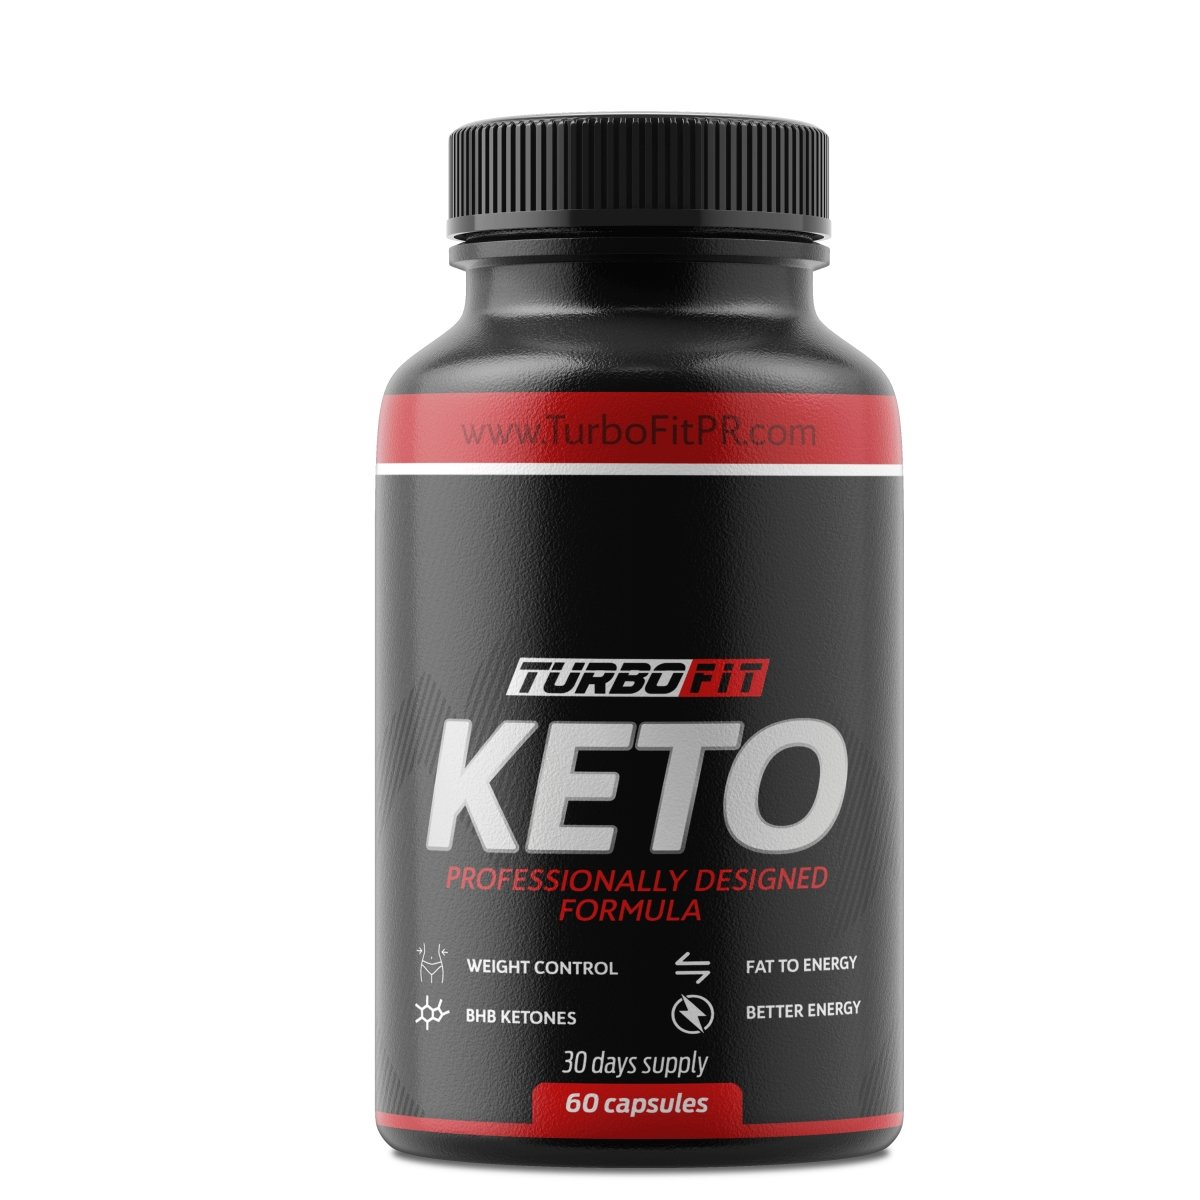 Turbo Fit - KETO - Maxima Concentracion